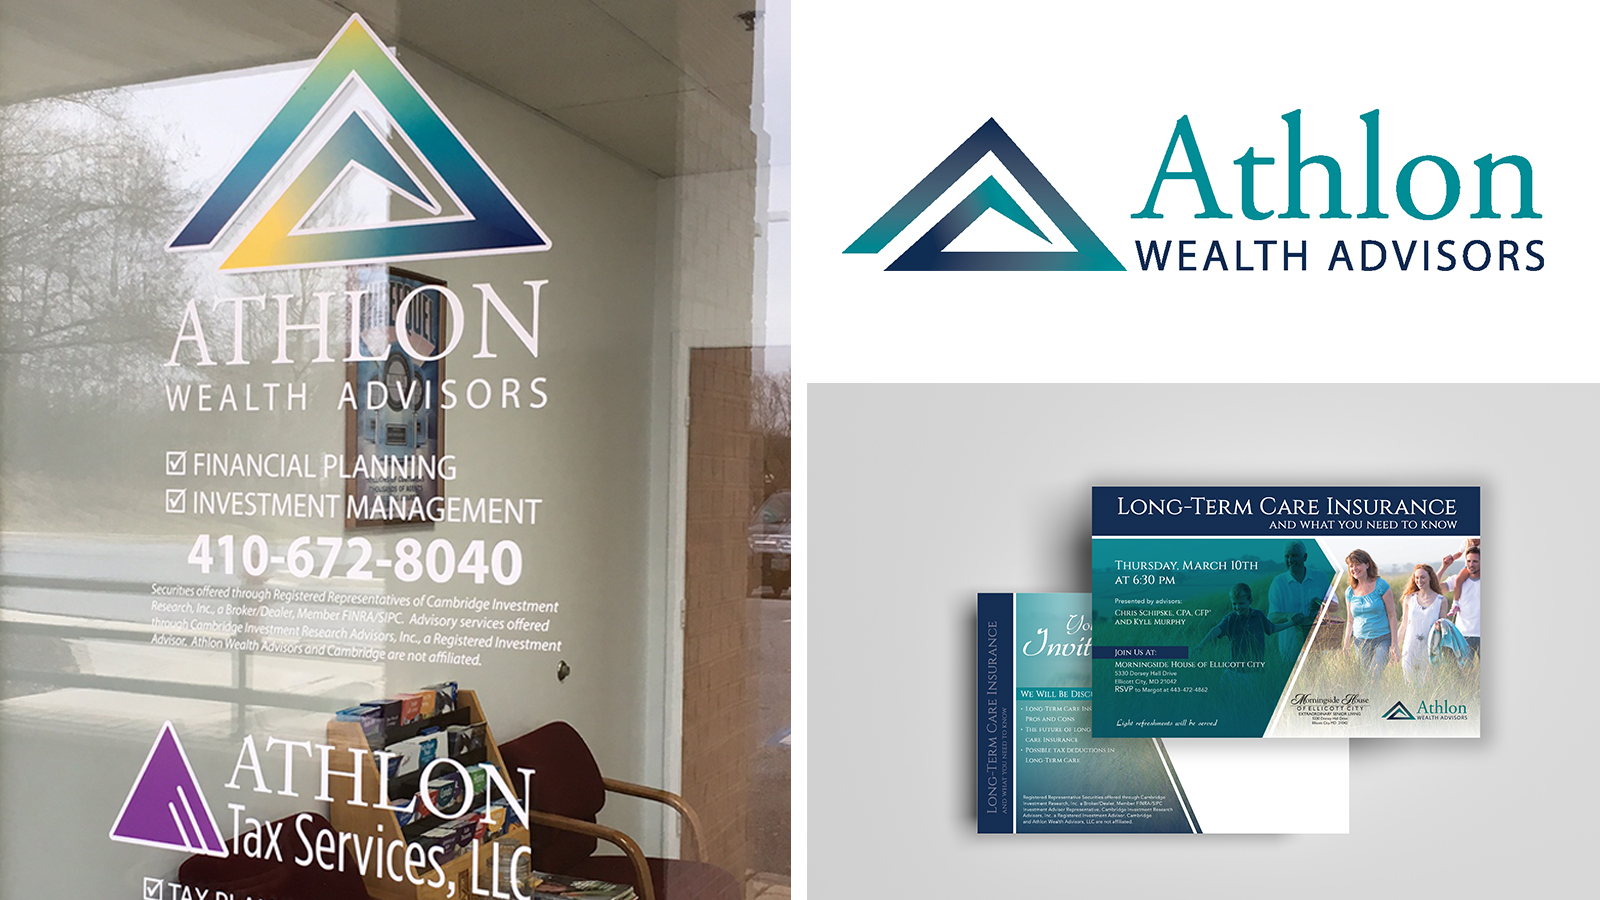 Athlon Wealth Advisors